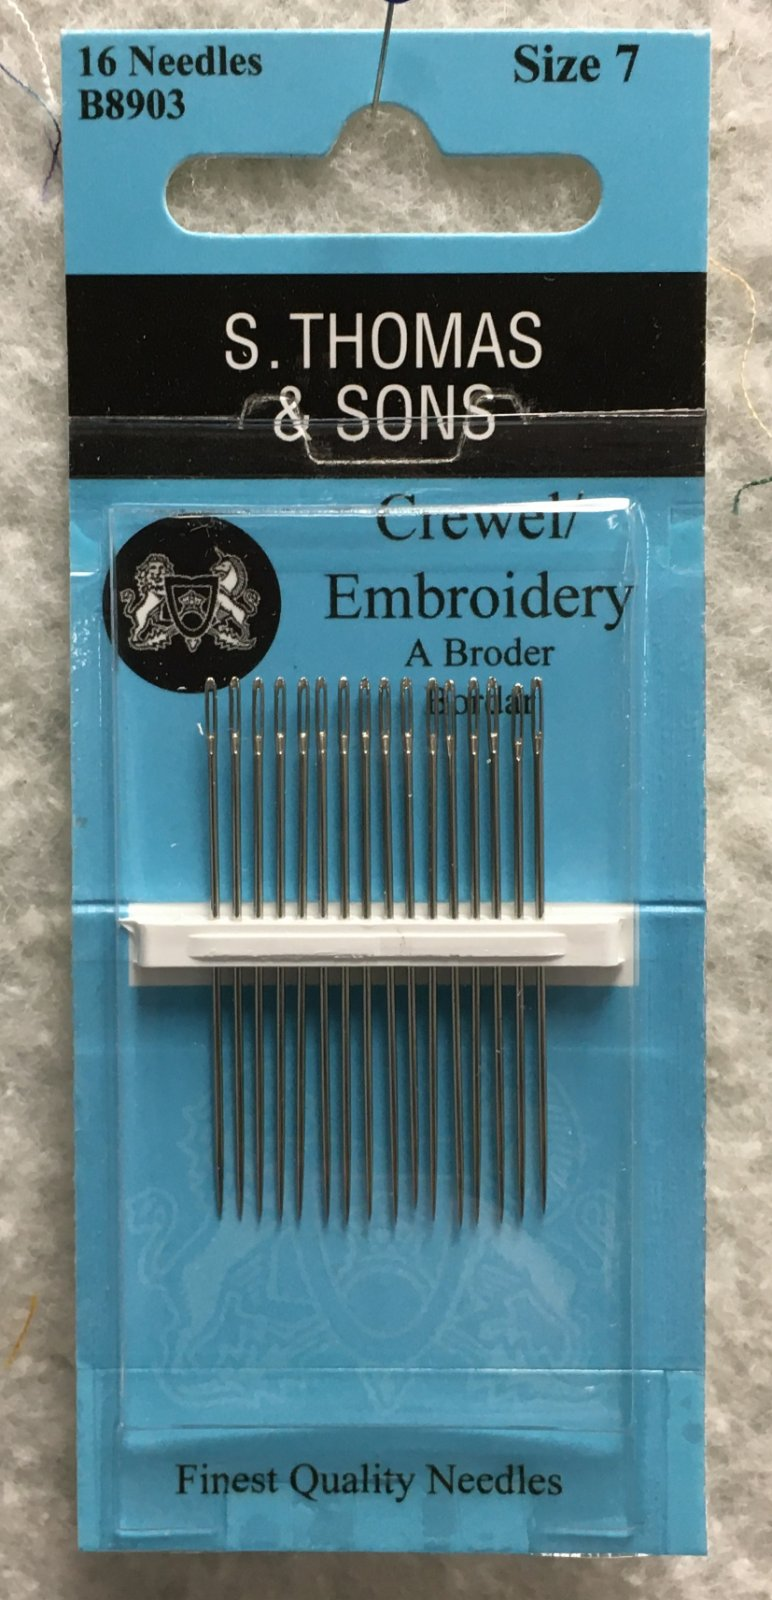 S. Thomas & Sons Crewel Embroidery Needles Size 7